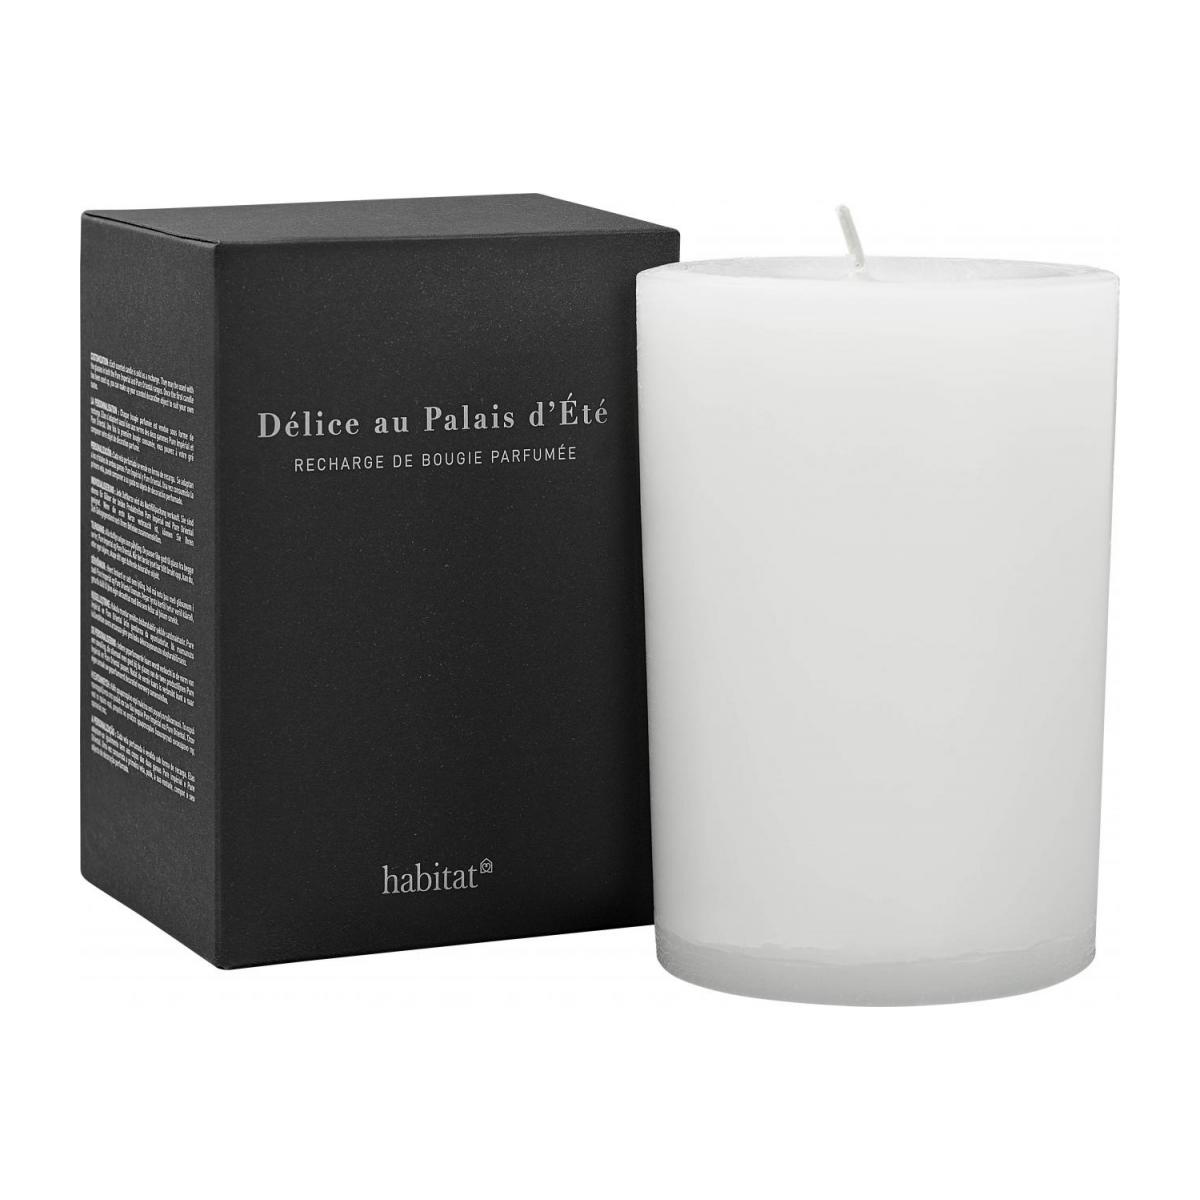 Refill for large Palais scented candle, 600g n°1